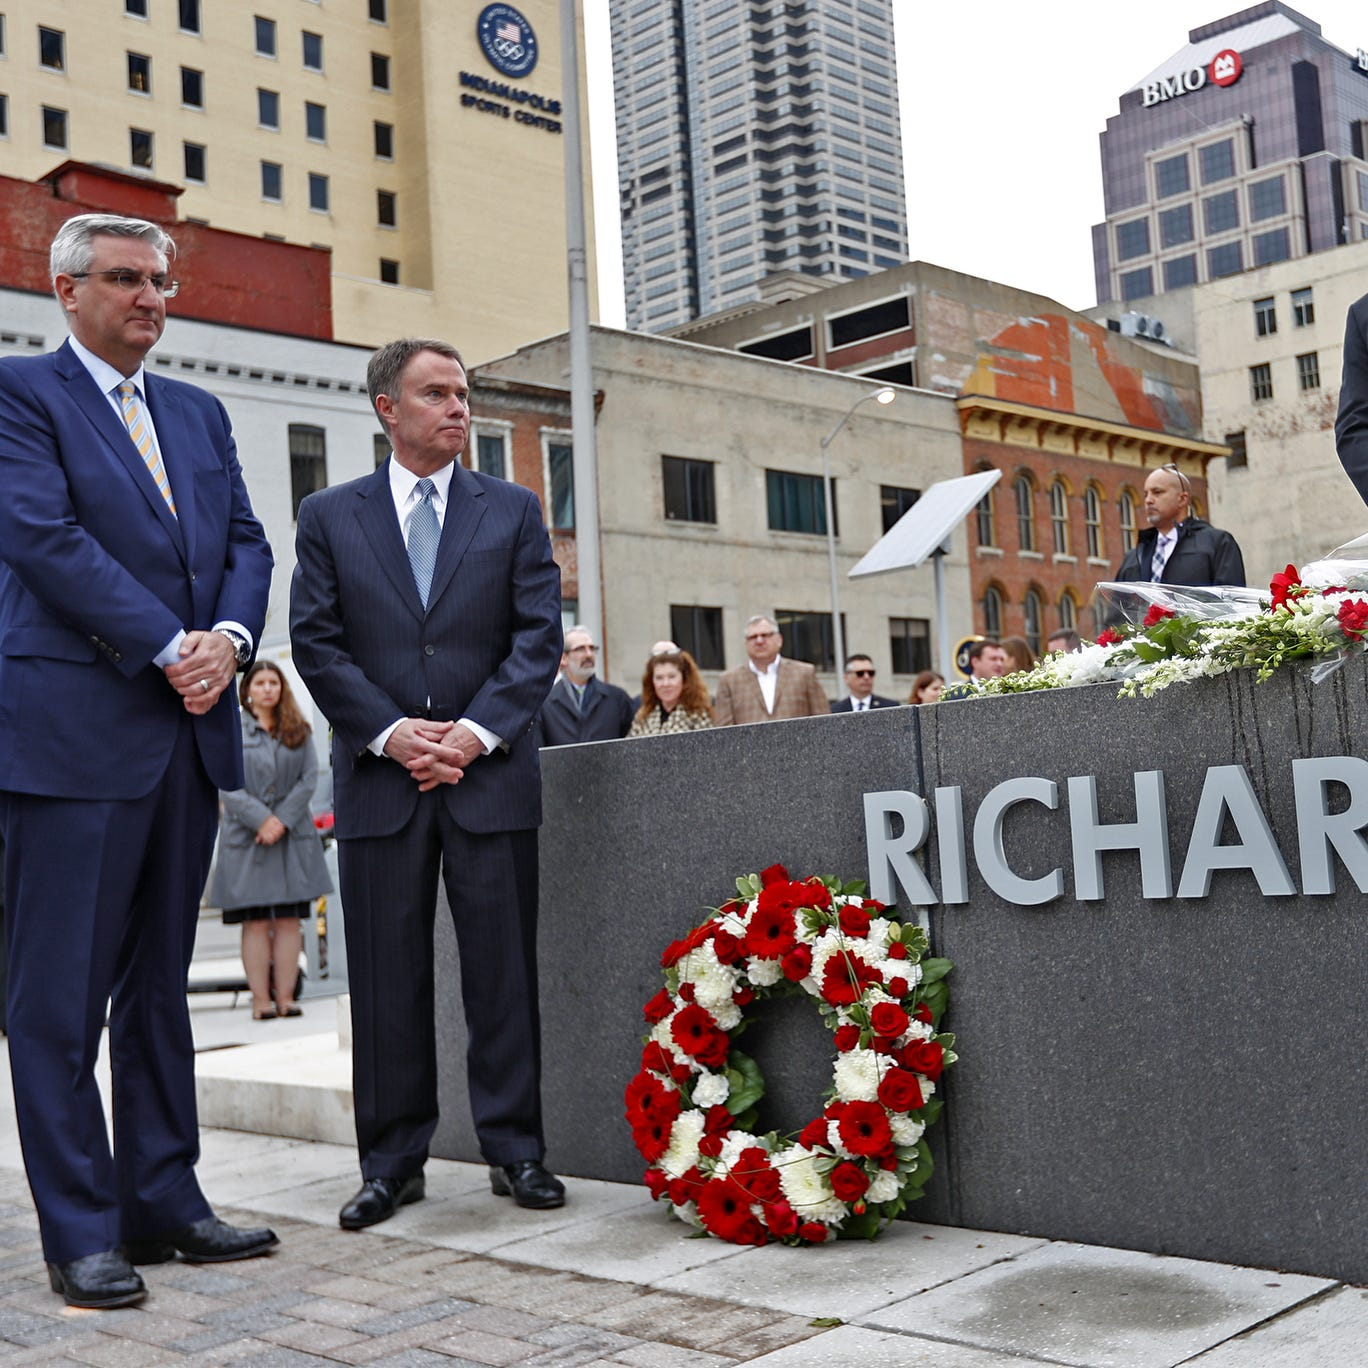 'He was absolutely the best of us': Indianapolis celebrates the life and legacy of Richard Lugar